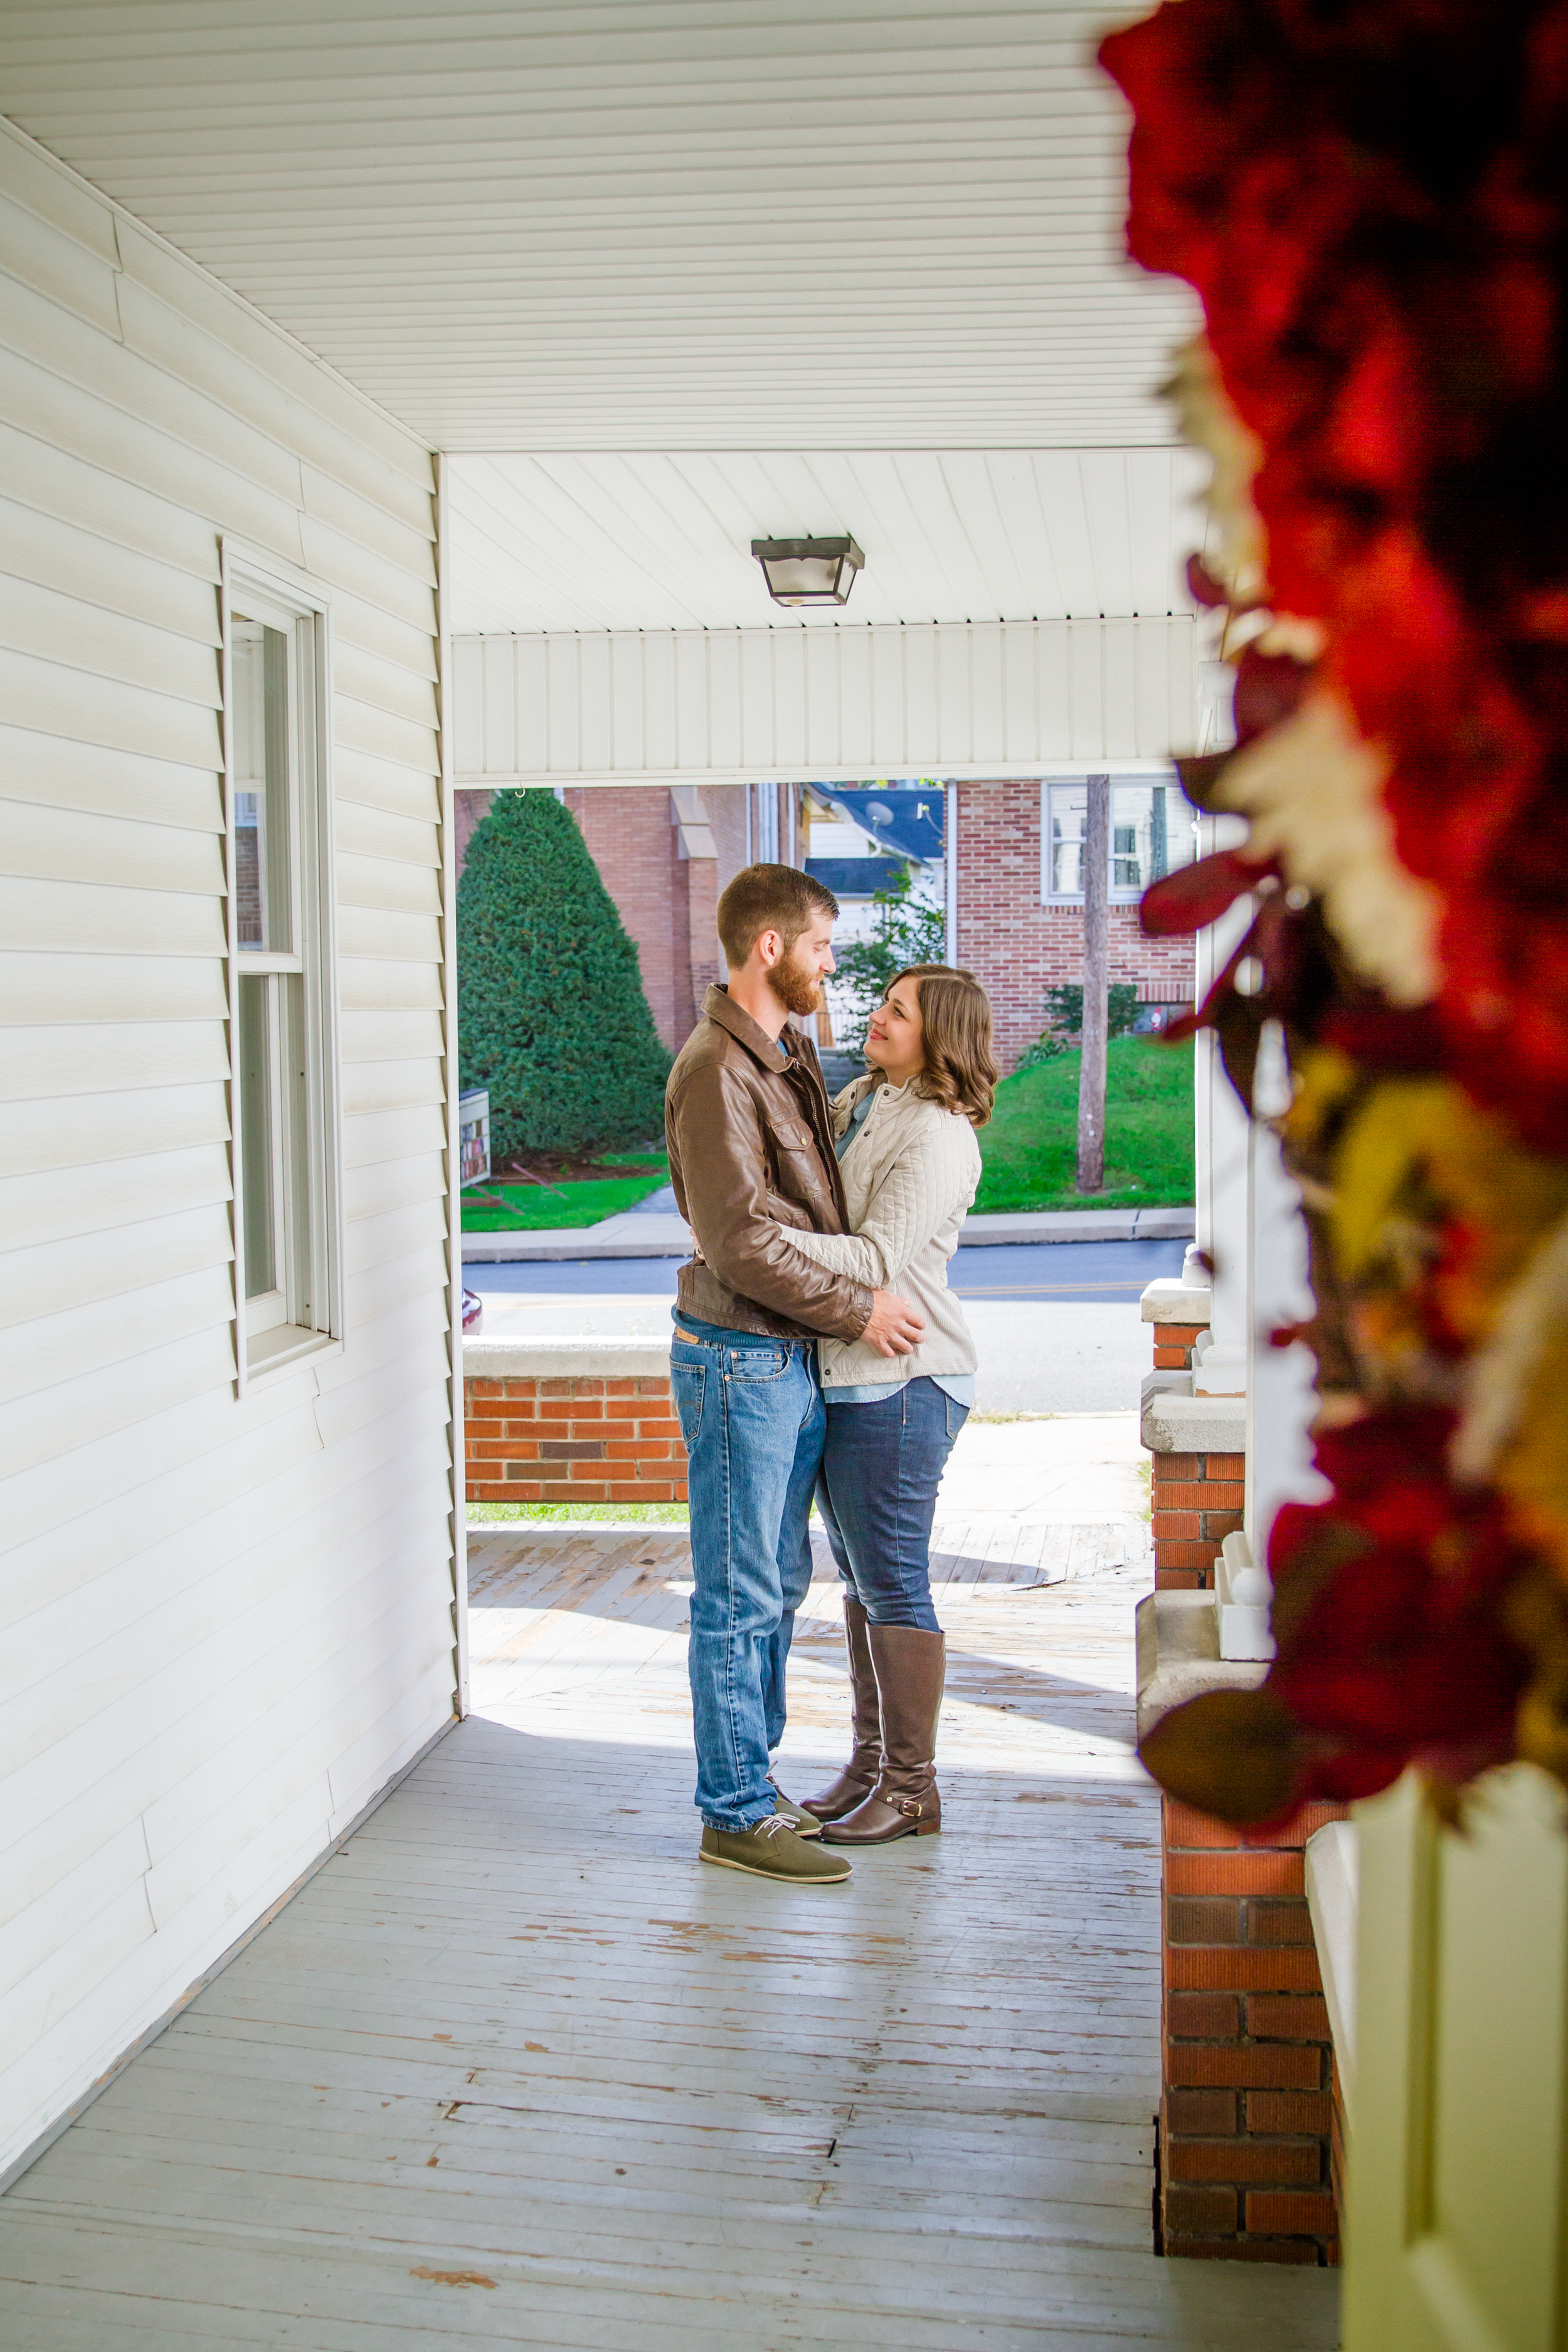 At Home Lifestyle Photography Session with Savannah Smith Photography | York, PA - Stevie Storck Design Co.